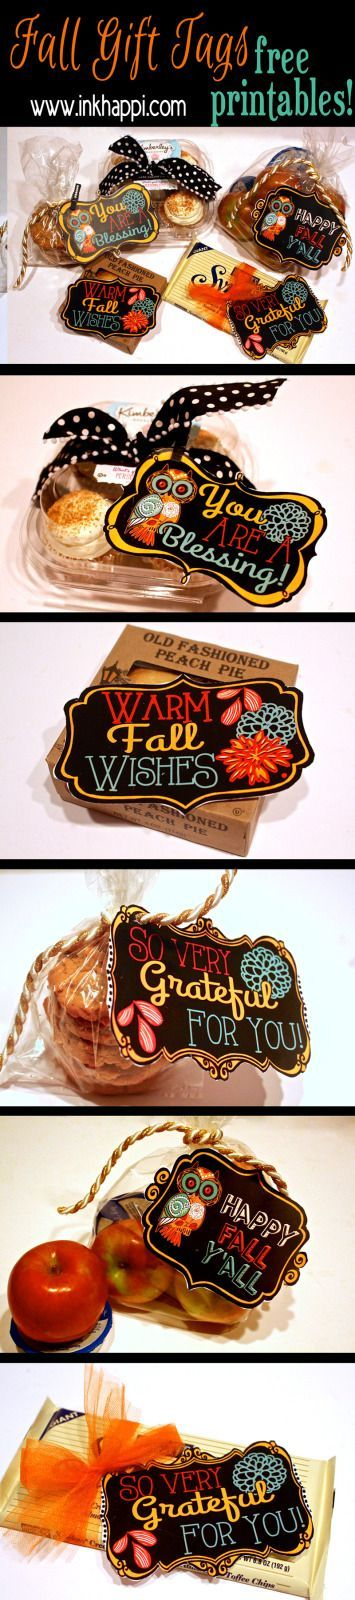 Fall printable gift tags to show your gratitude! ideas and download at inkhappi.com.